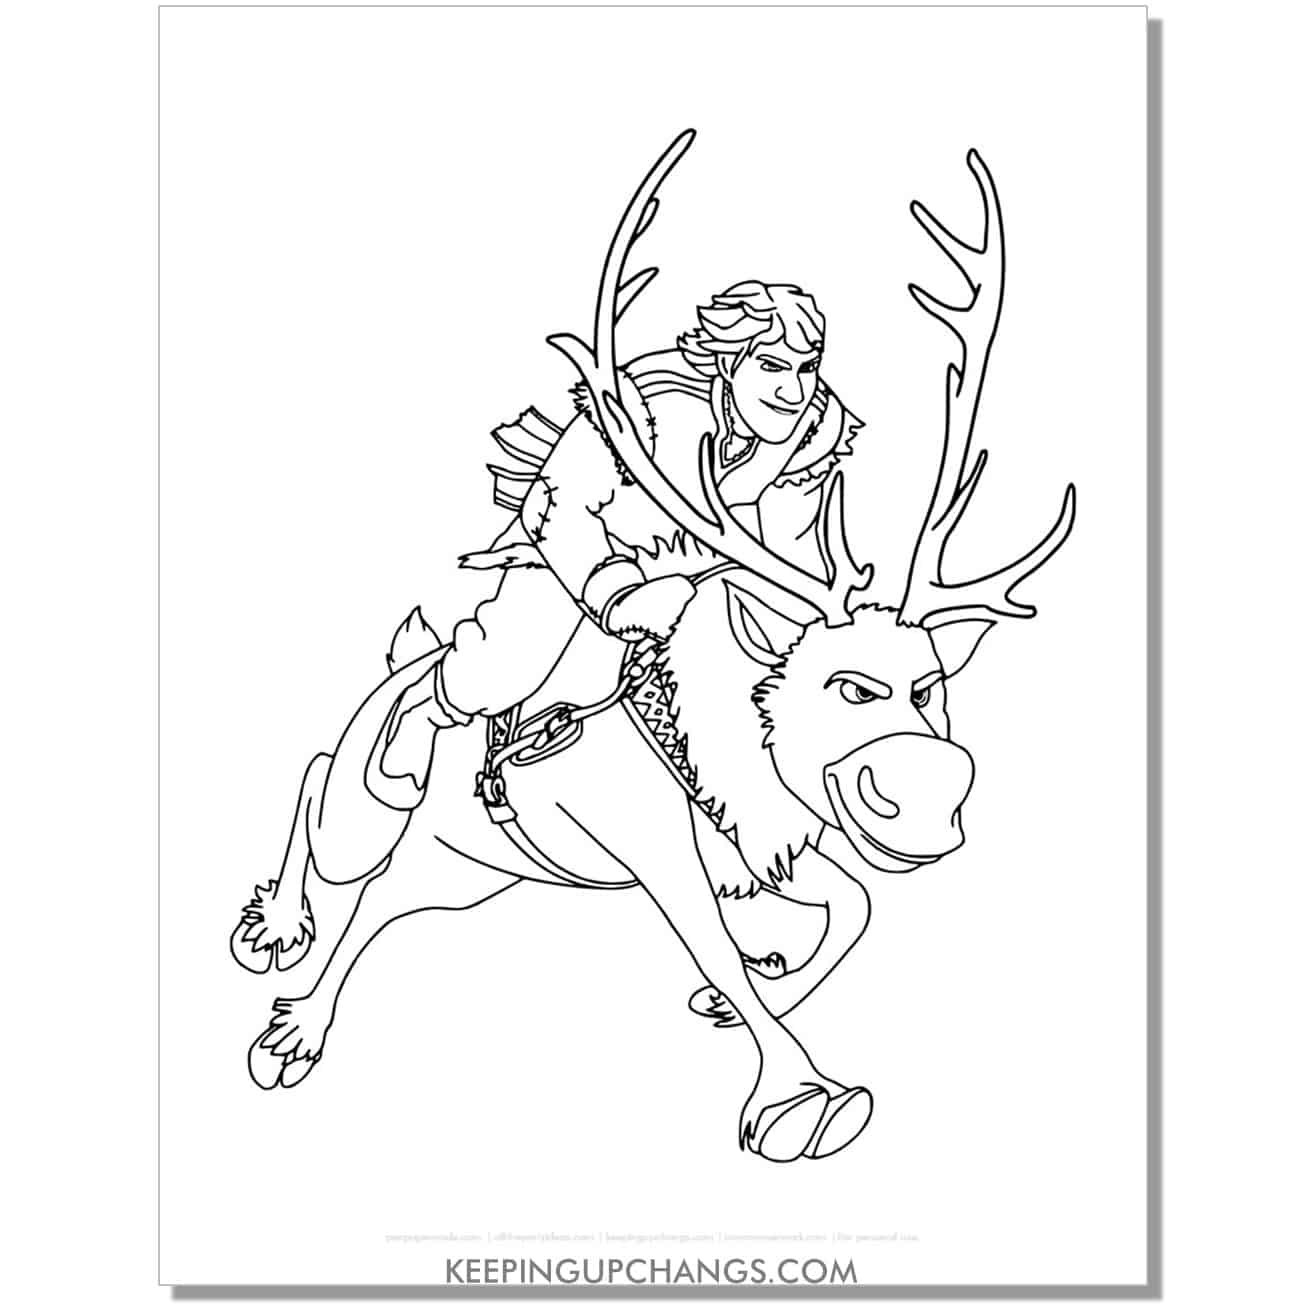 free sven and kristoff frozen coloring page.